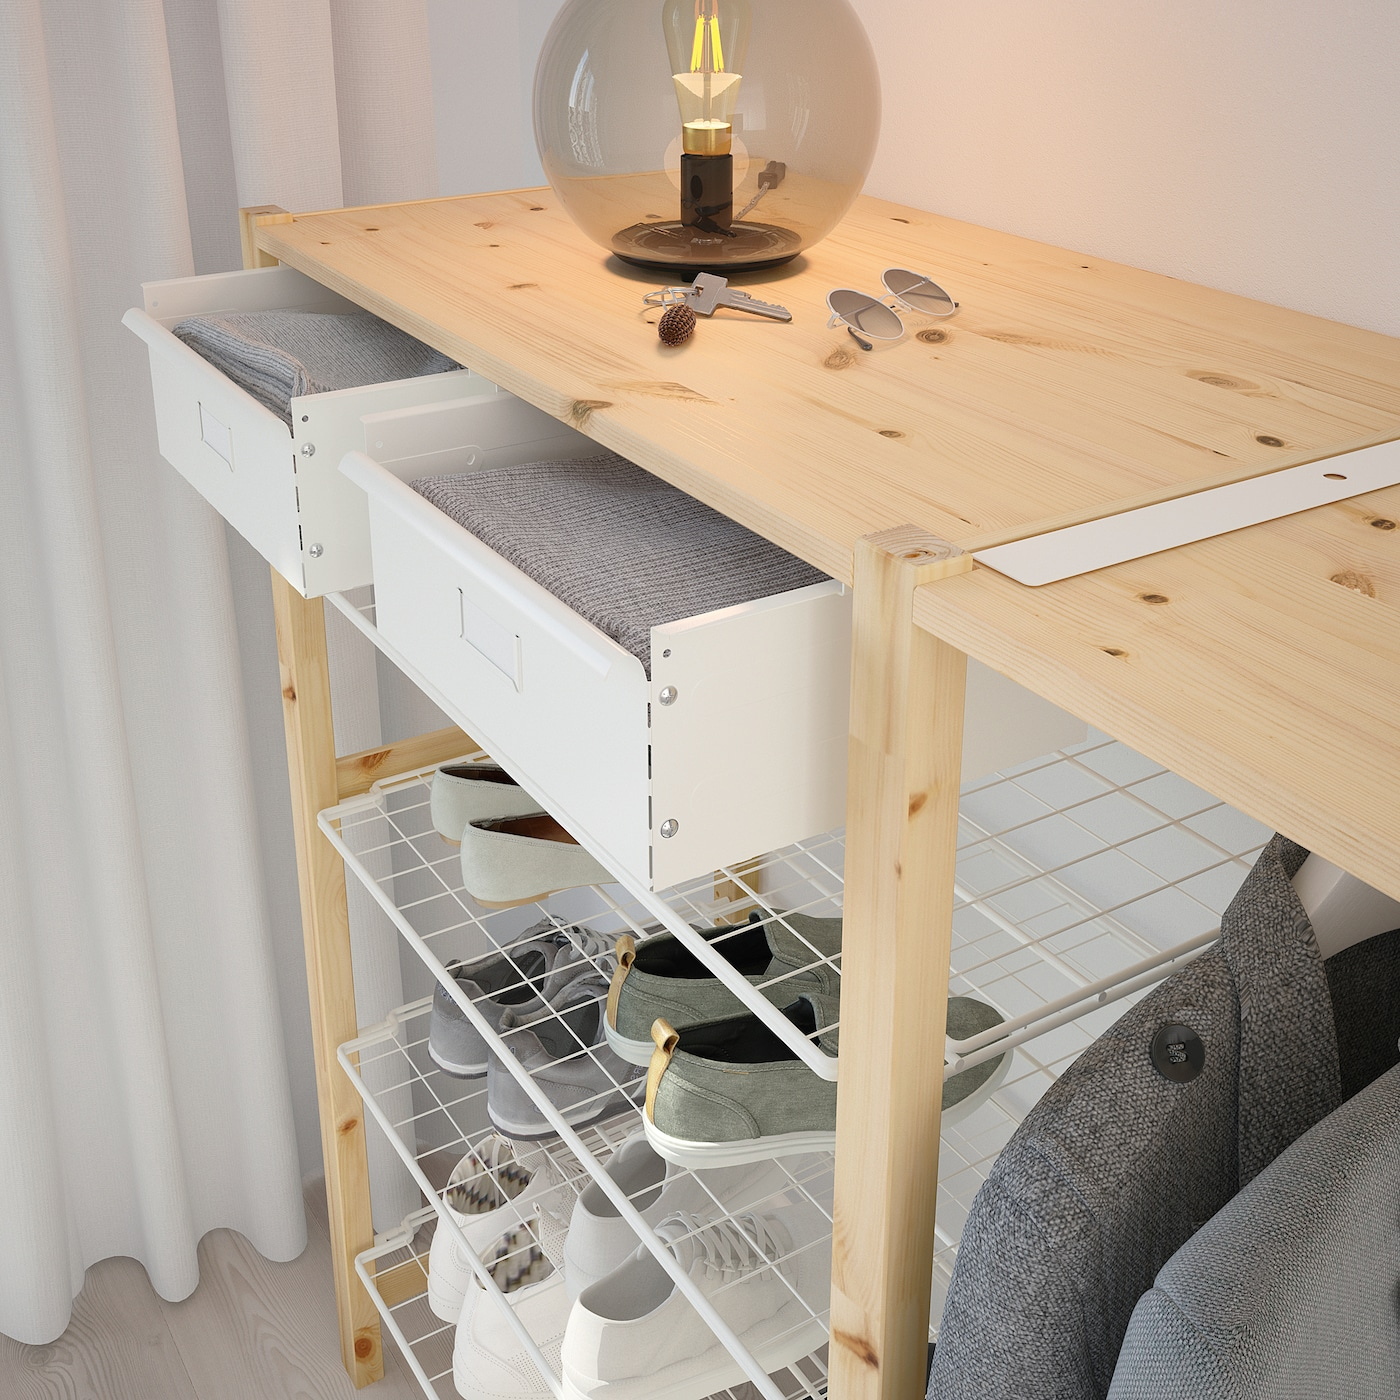 Ikea Ivar Instructions Uk